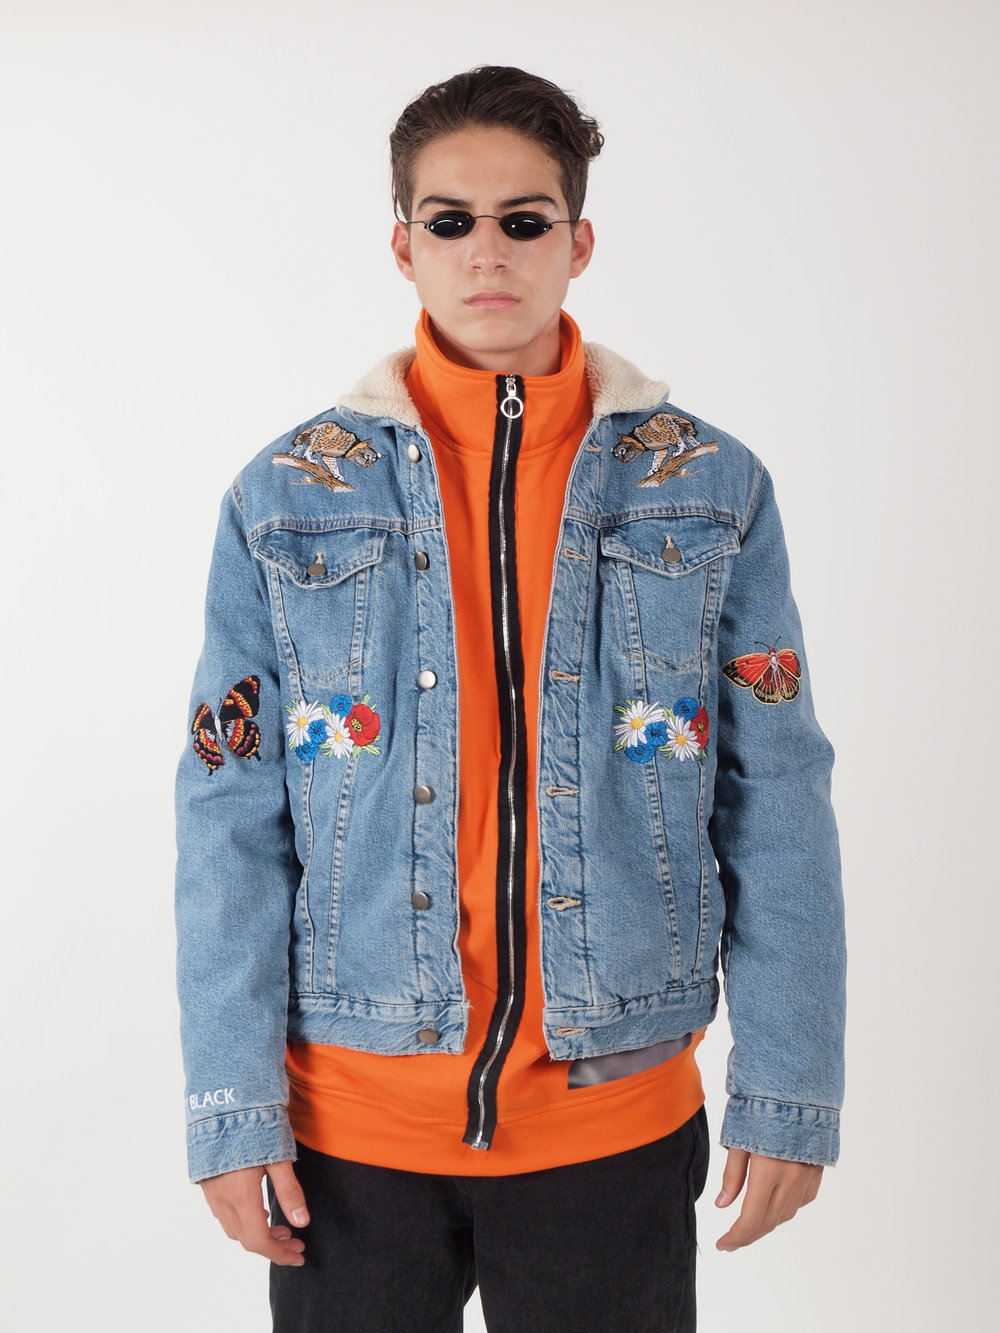 shearling denim jacket.jpg